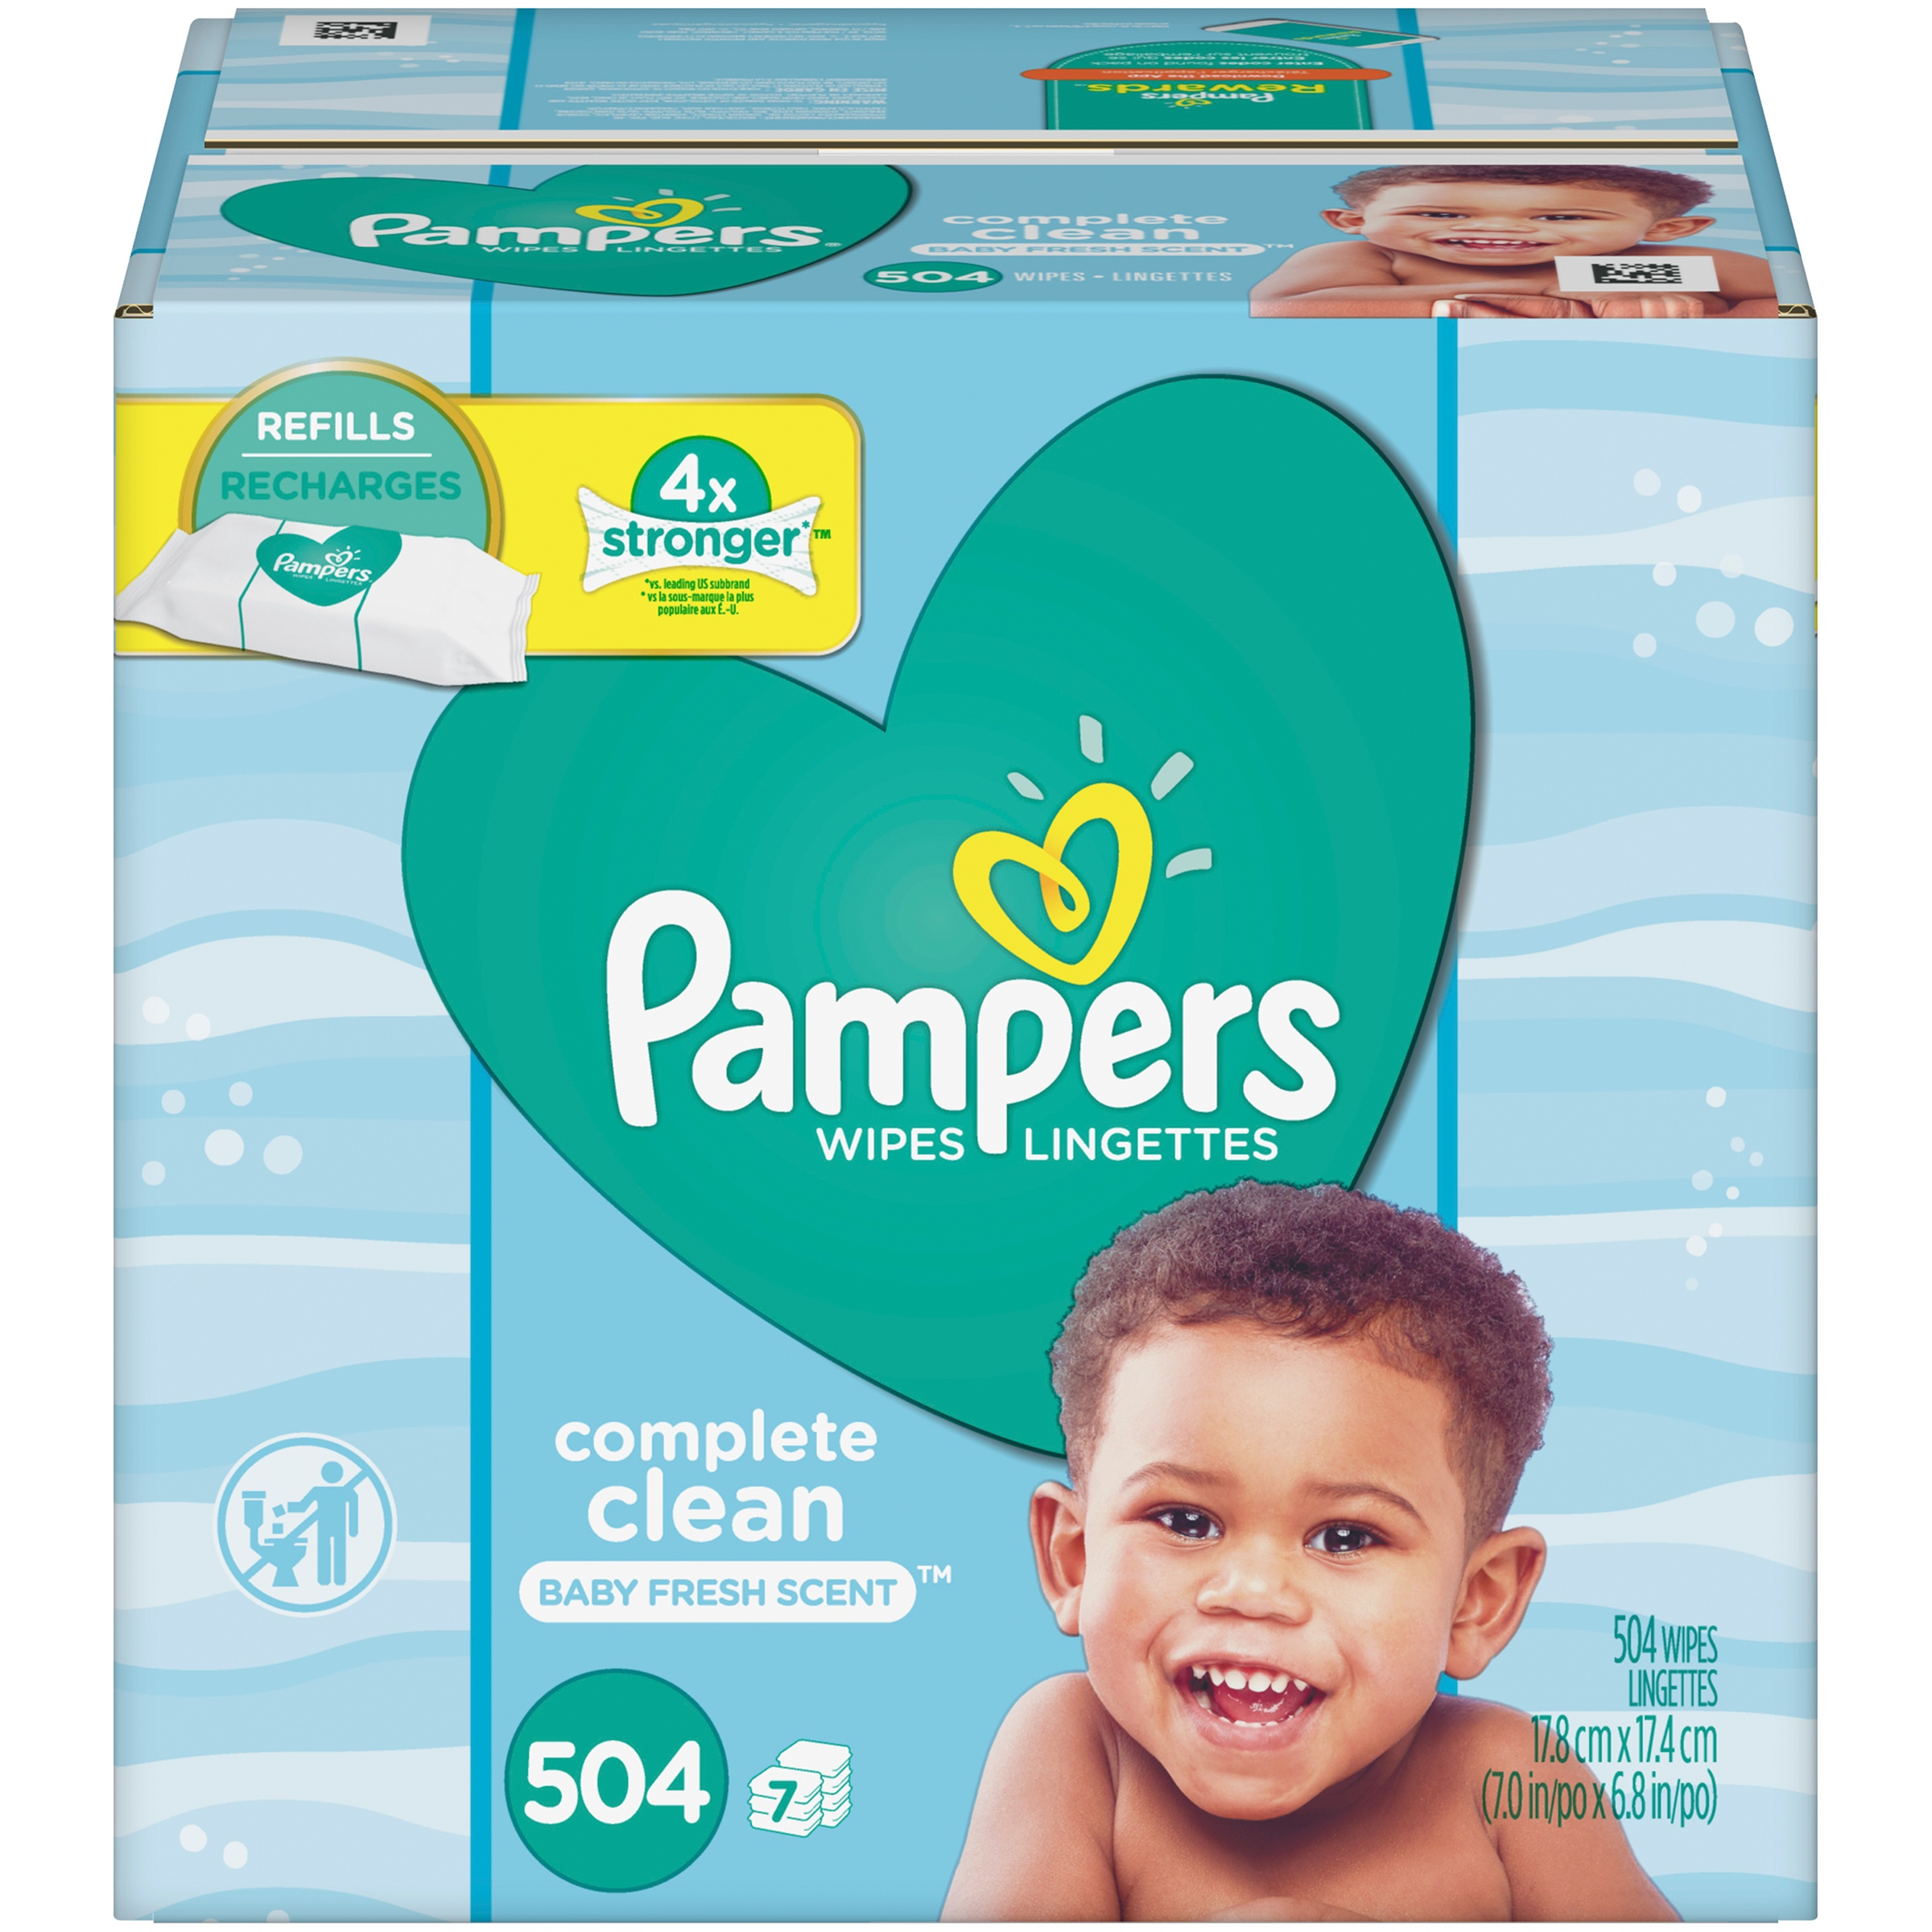 Pampers Complete Clean Baby Fresh Scent Baby Wipes Refills (504 count)